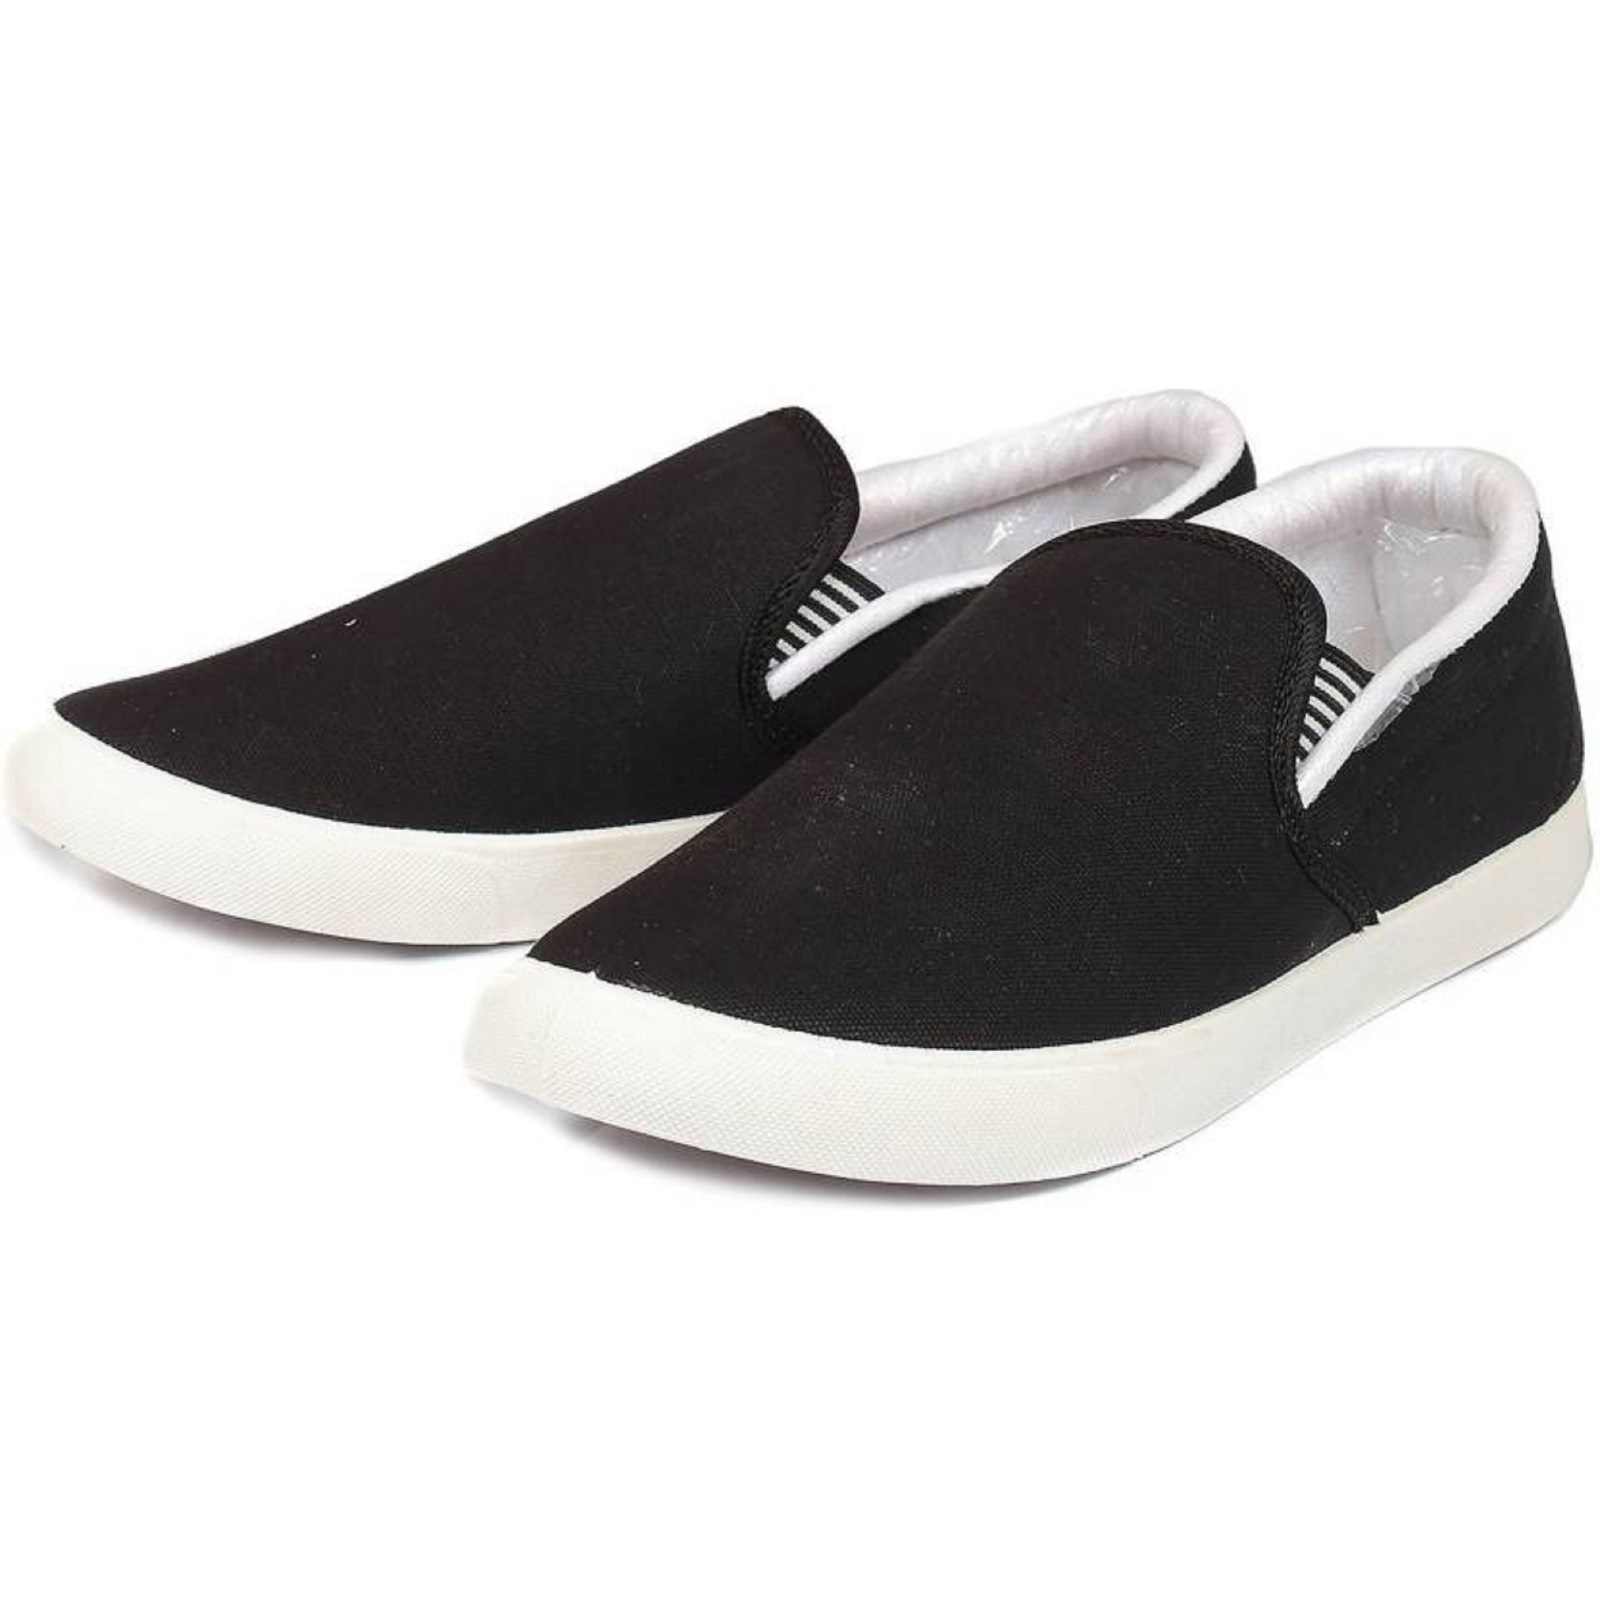 Hotstyle Men's White Sneakers